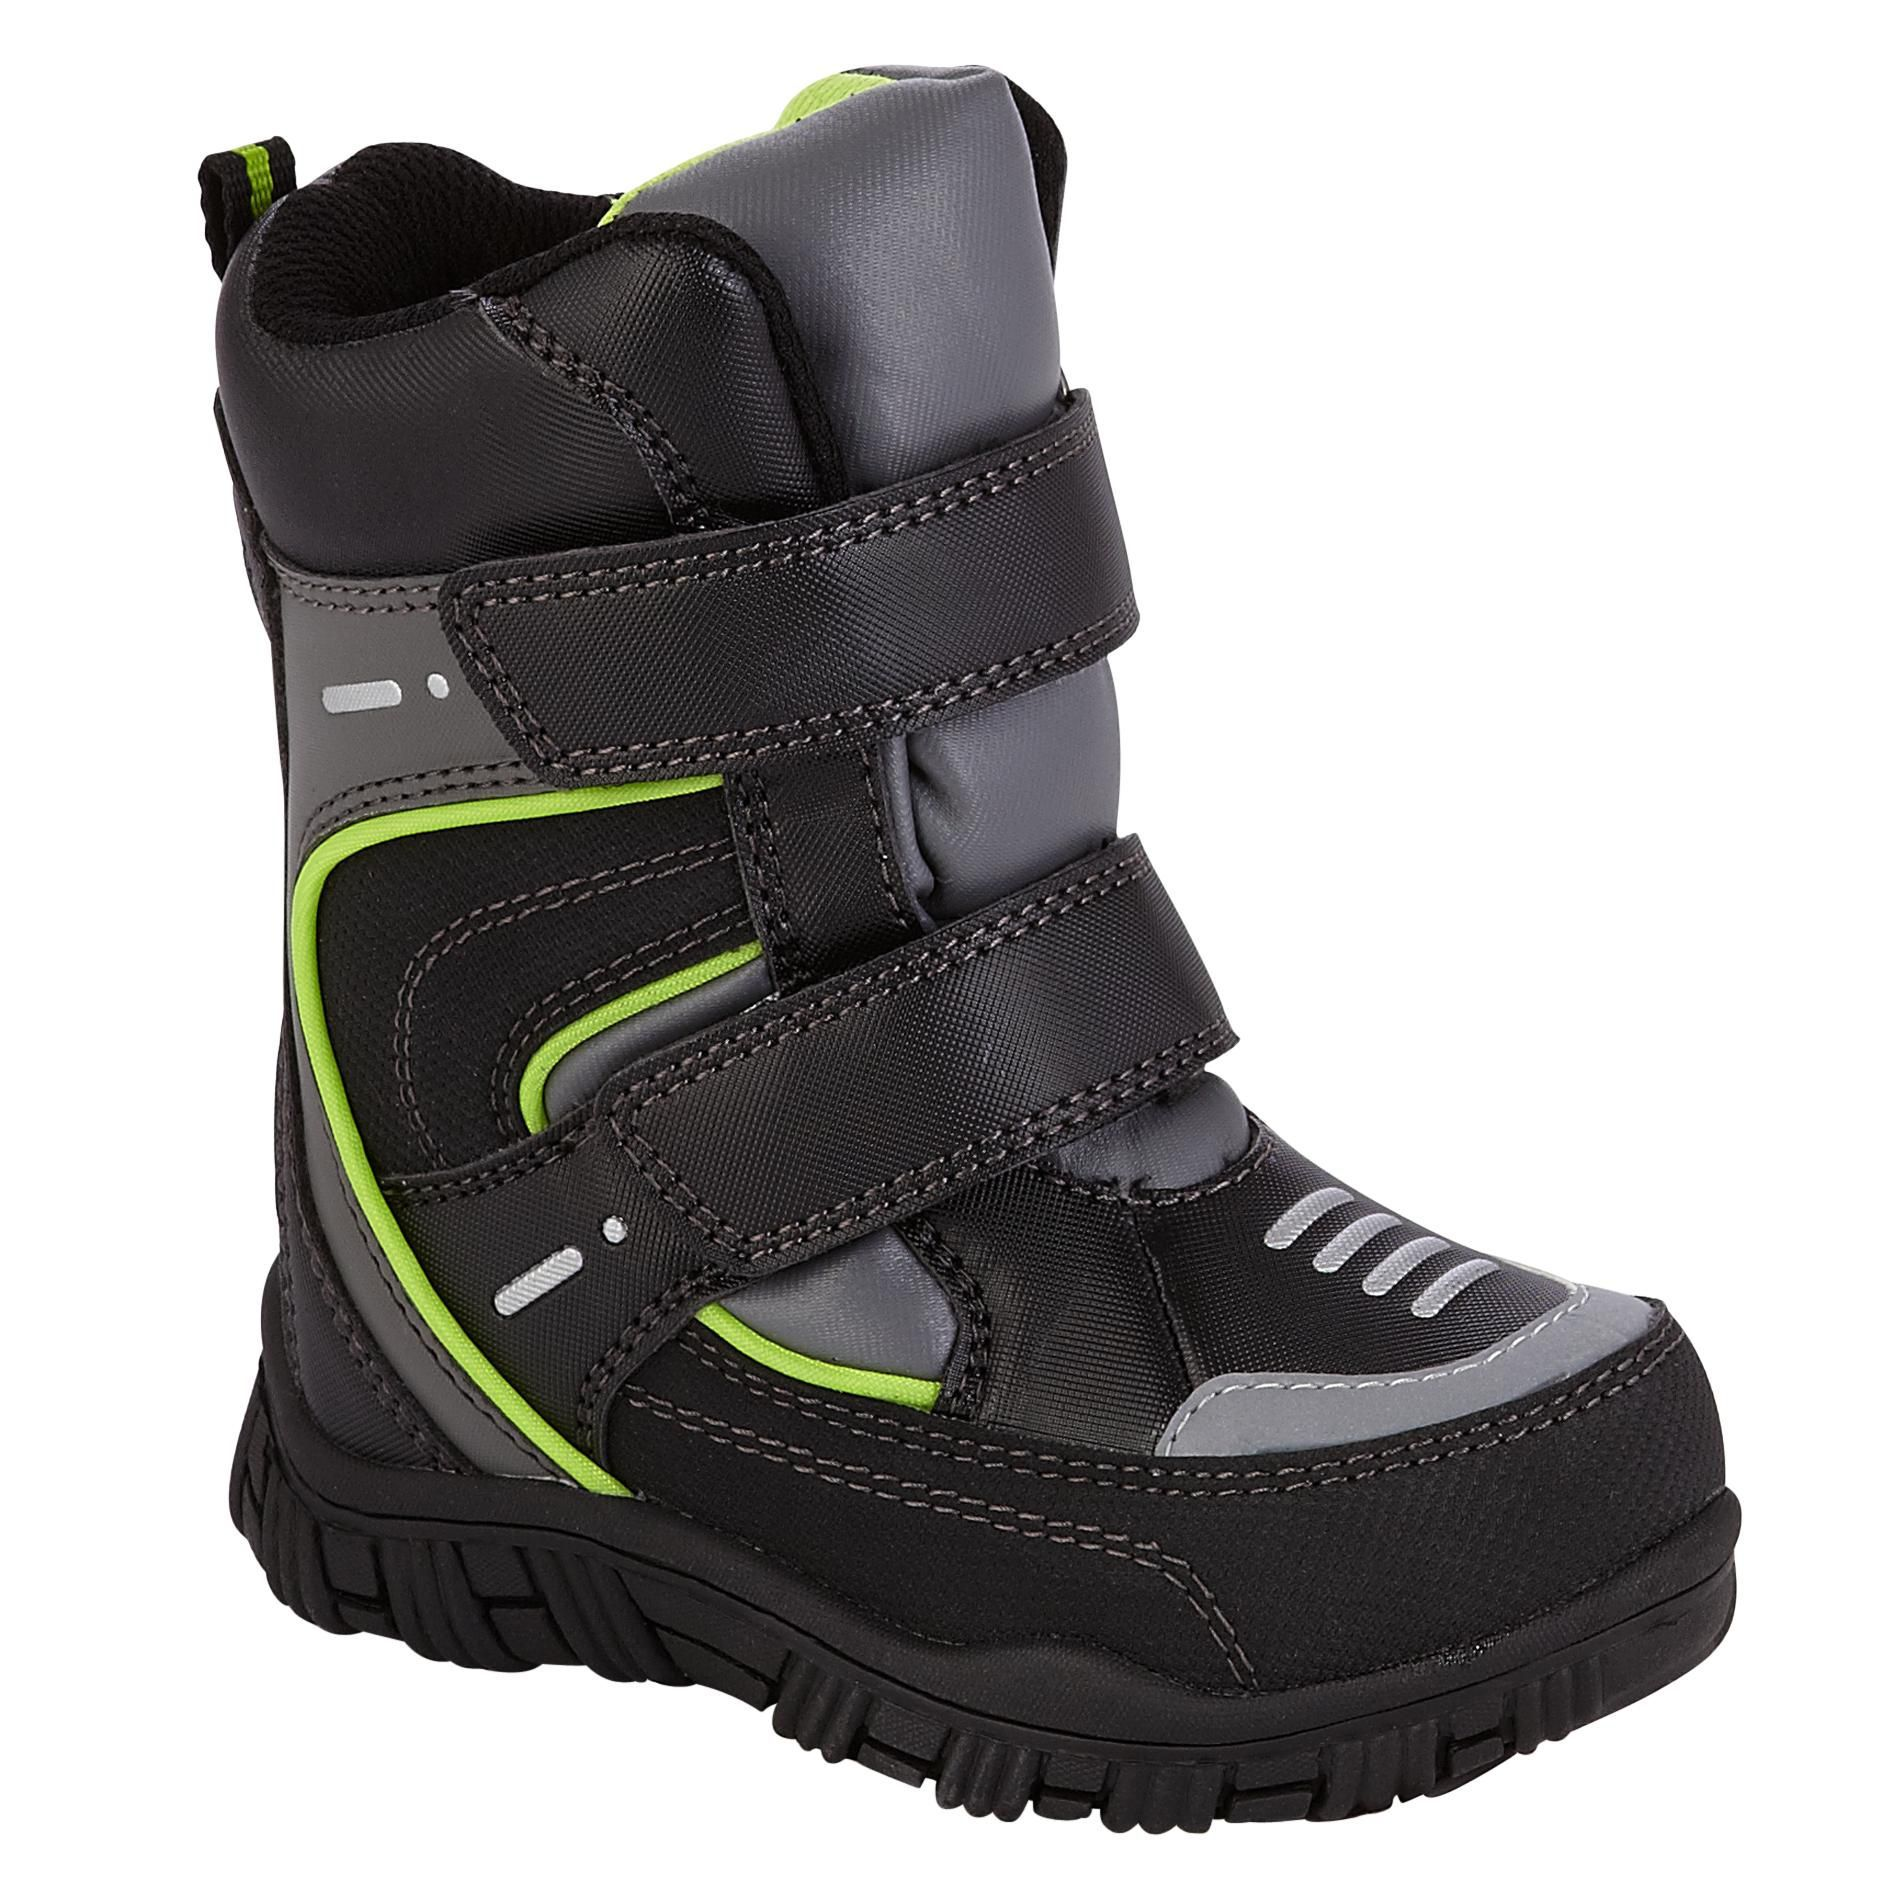 Athletech Toddler Boy's Abraham 2 Winter Boot - Black